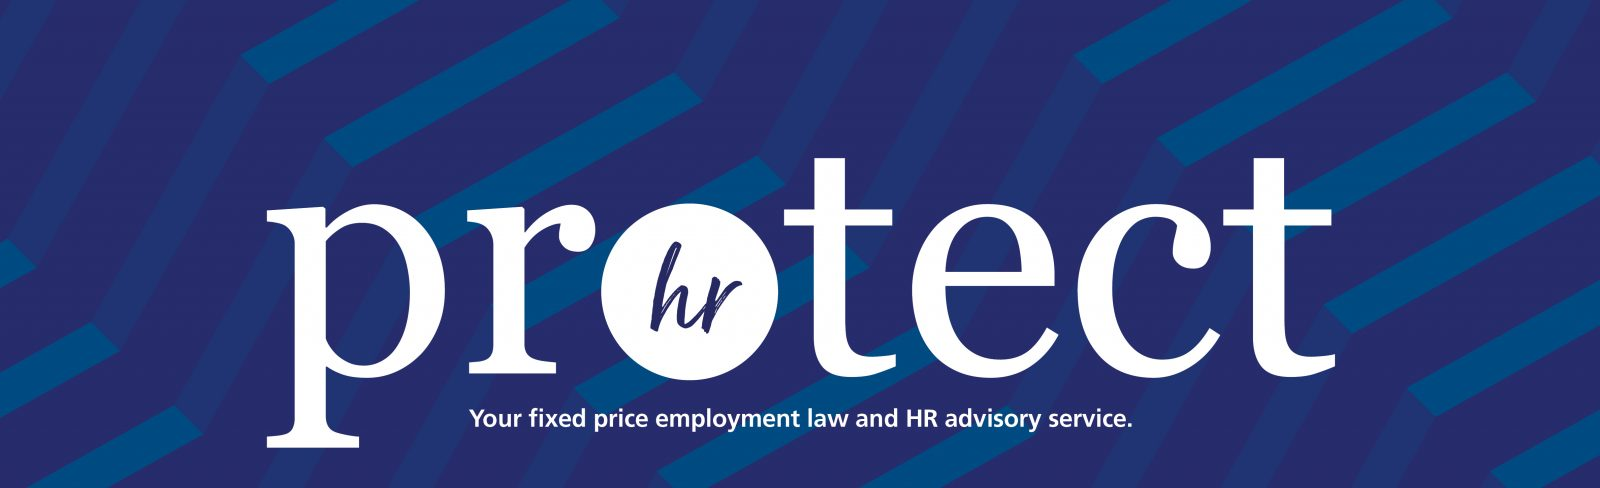 HR Protect